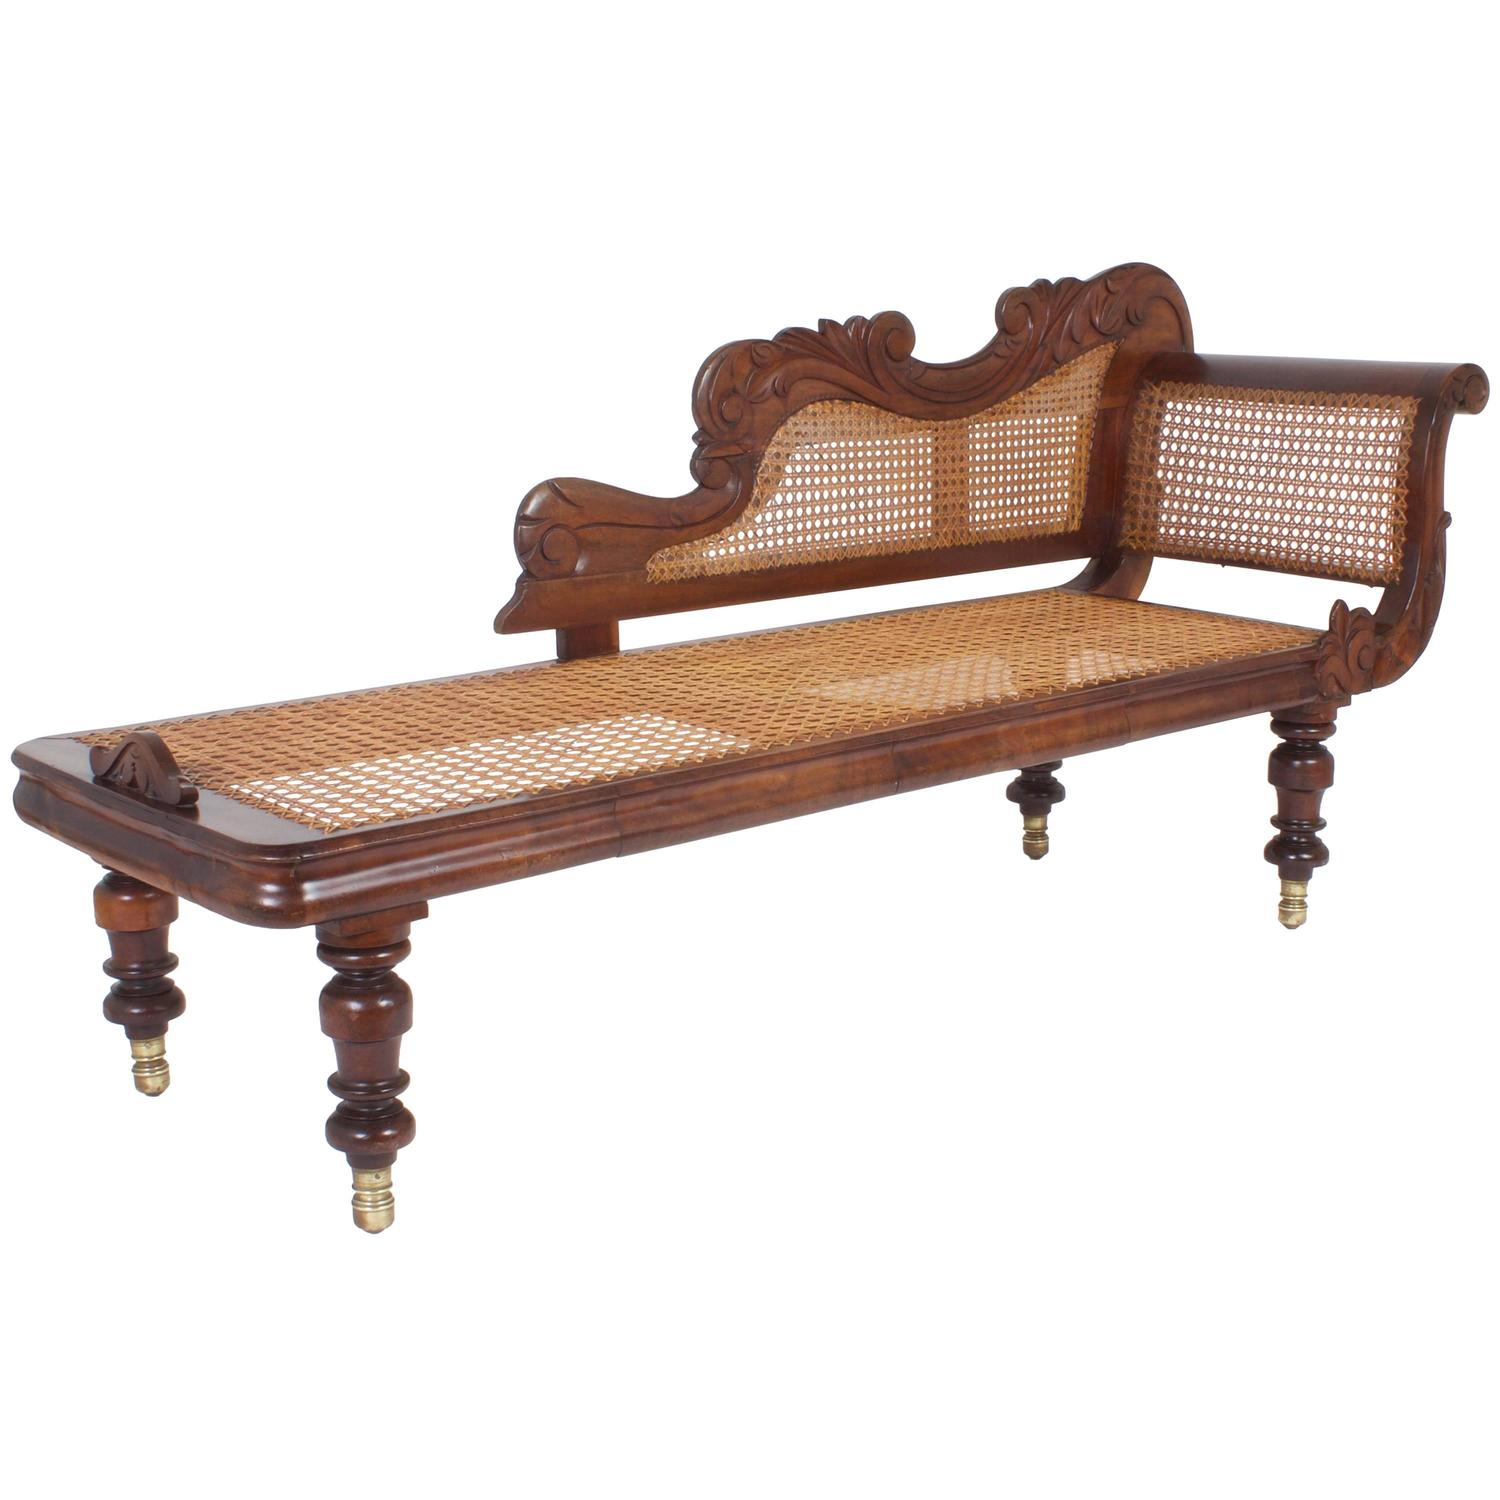 British colonial mahogany antique chaise longue at 1stdibs - Antique chaise longue ...